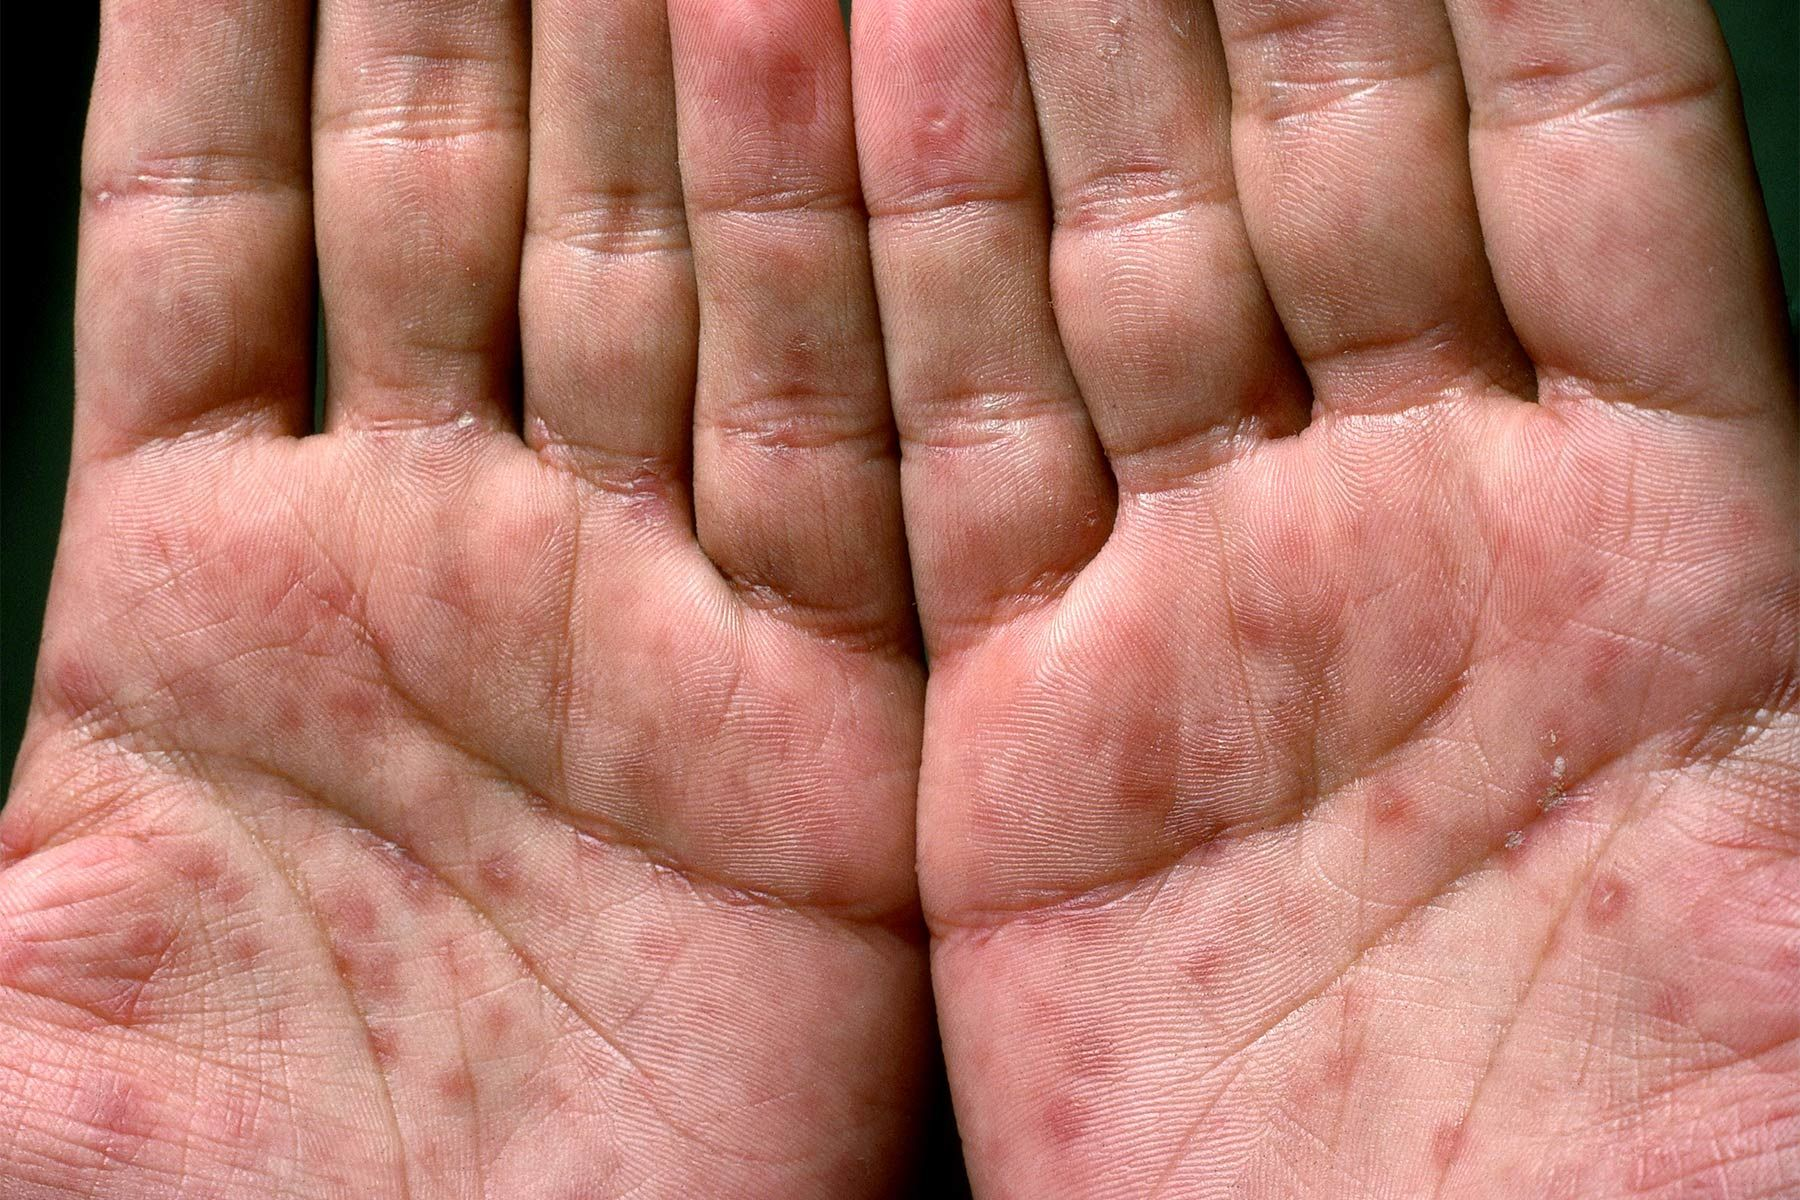 hpv symptoms on hands)